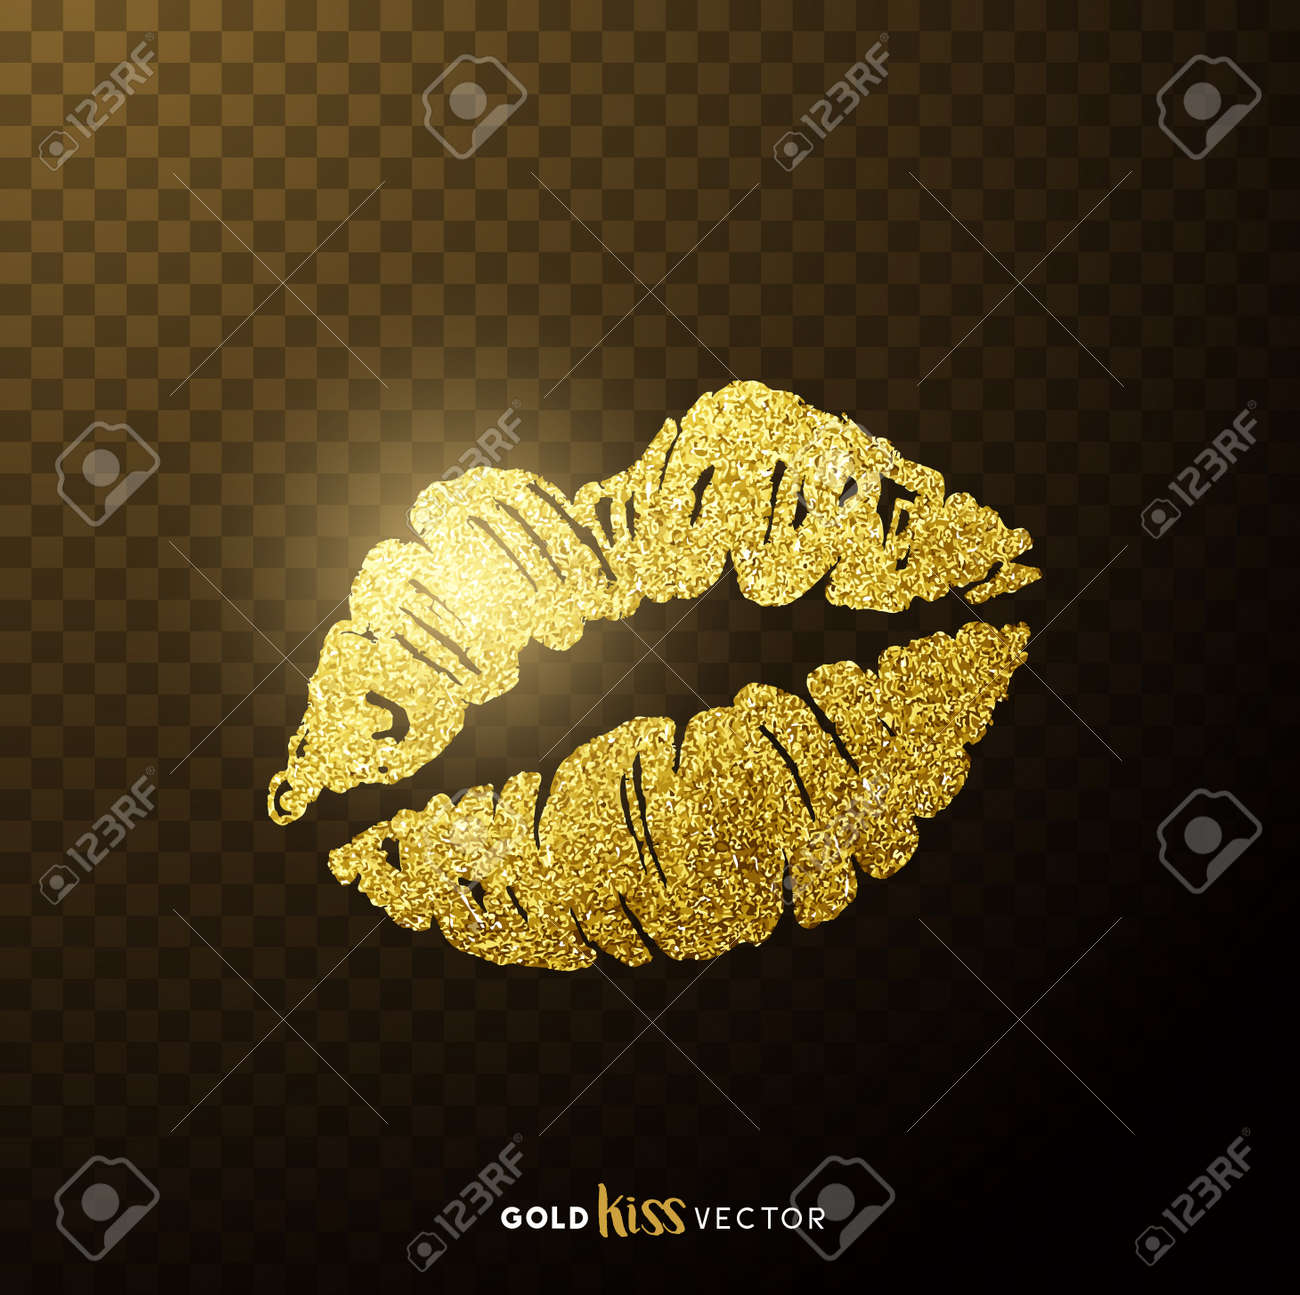 Gold and glittering glamorous kissing shaped lips. - 74704004